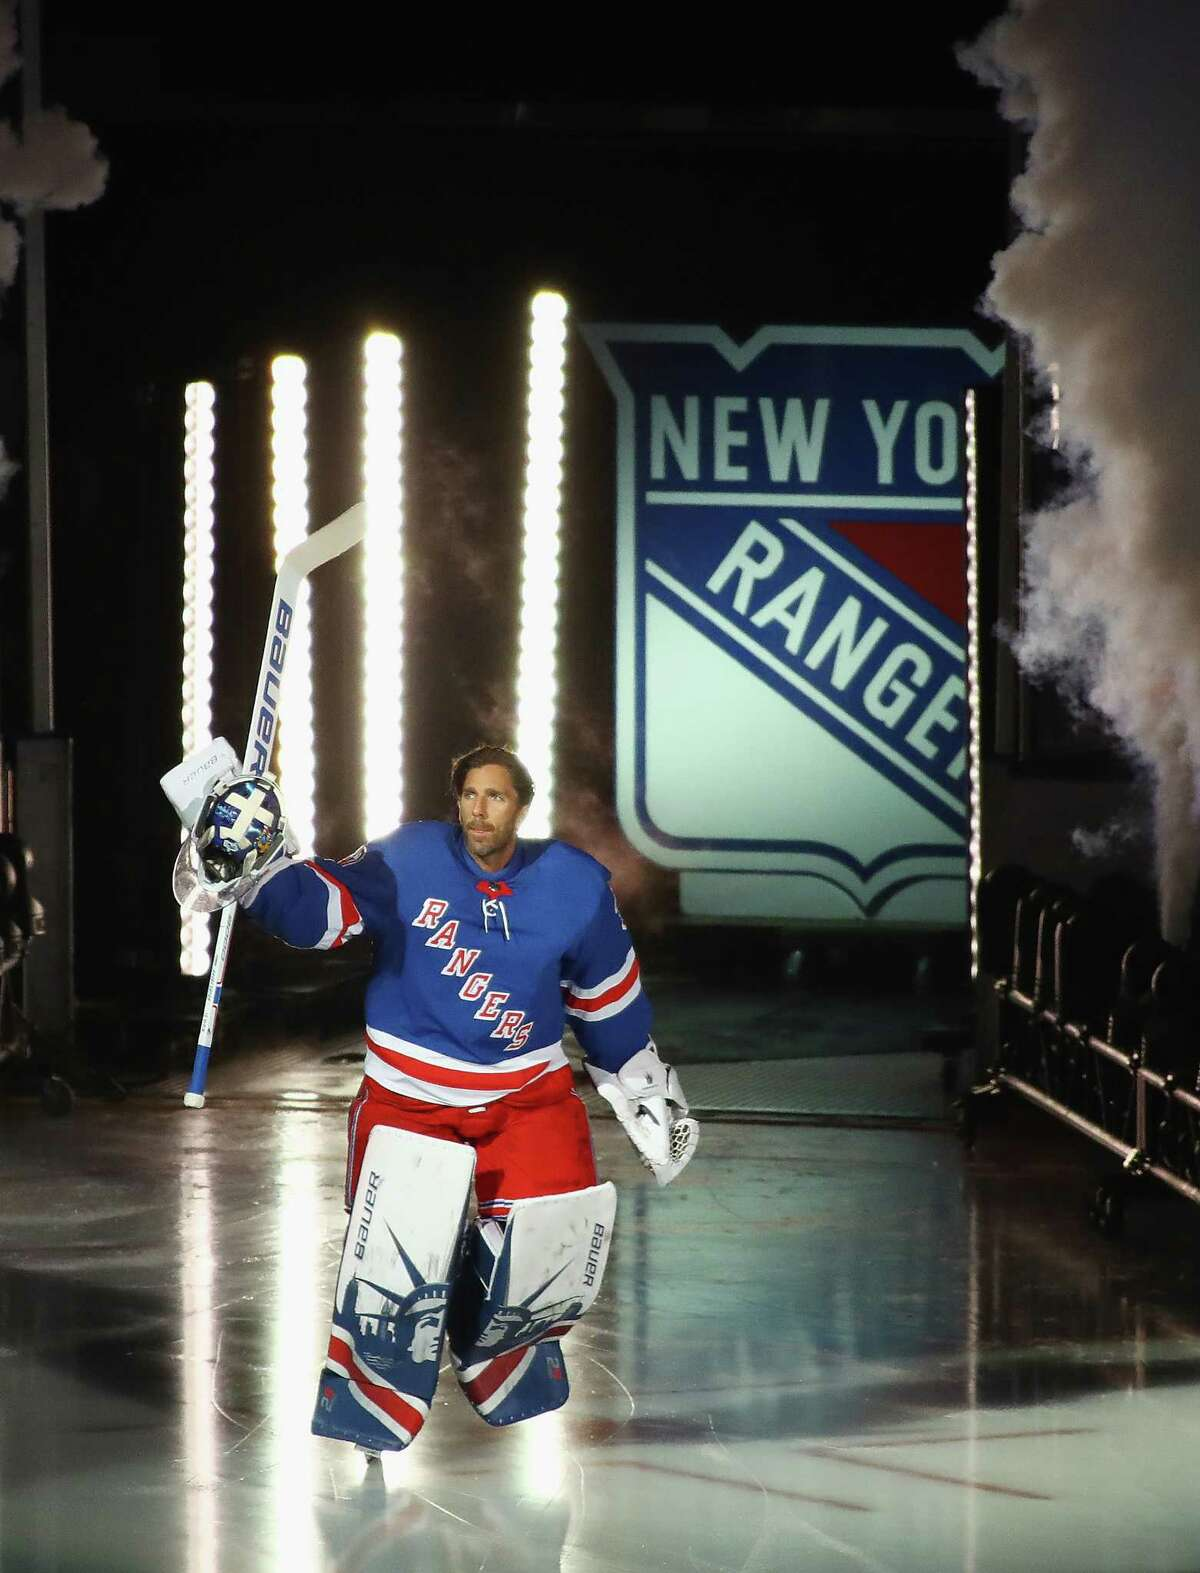 NEW YORK, NY - OCTOBER 05: Henrik Lundqvist #30 of the New York Rangers skates out prior to the game against the Colorado Avalanche at Madison Square Garden on October 5, 2017 in New York City. (Photo by Bruce Bennett/Getty Images) ORG XMIT: 775040573